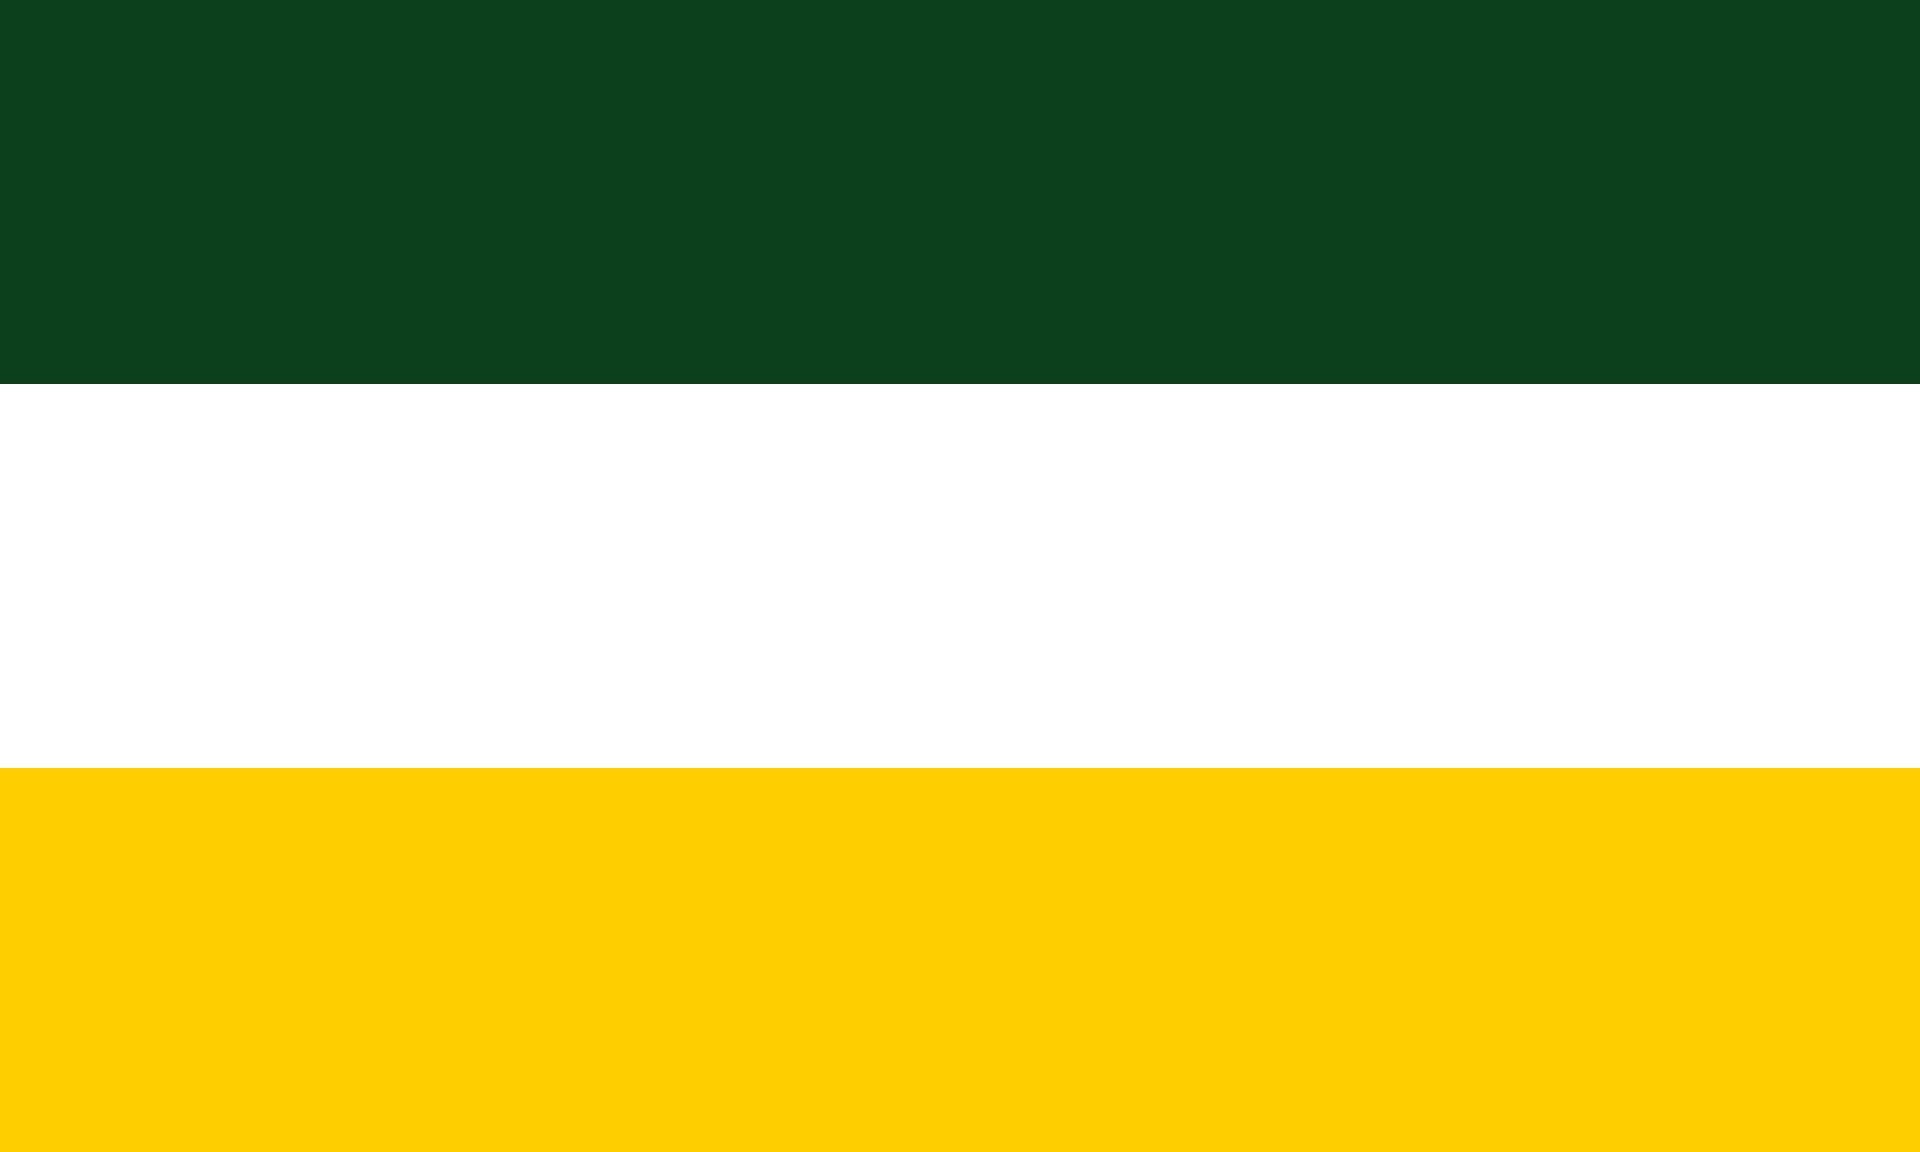 Flag of Ireland 3.png